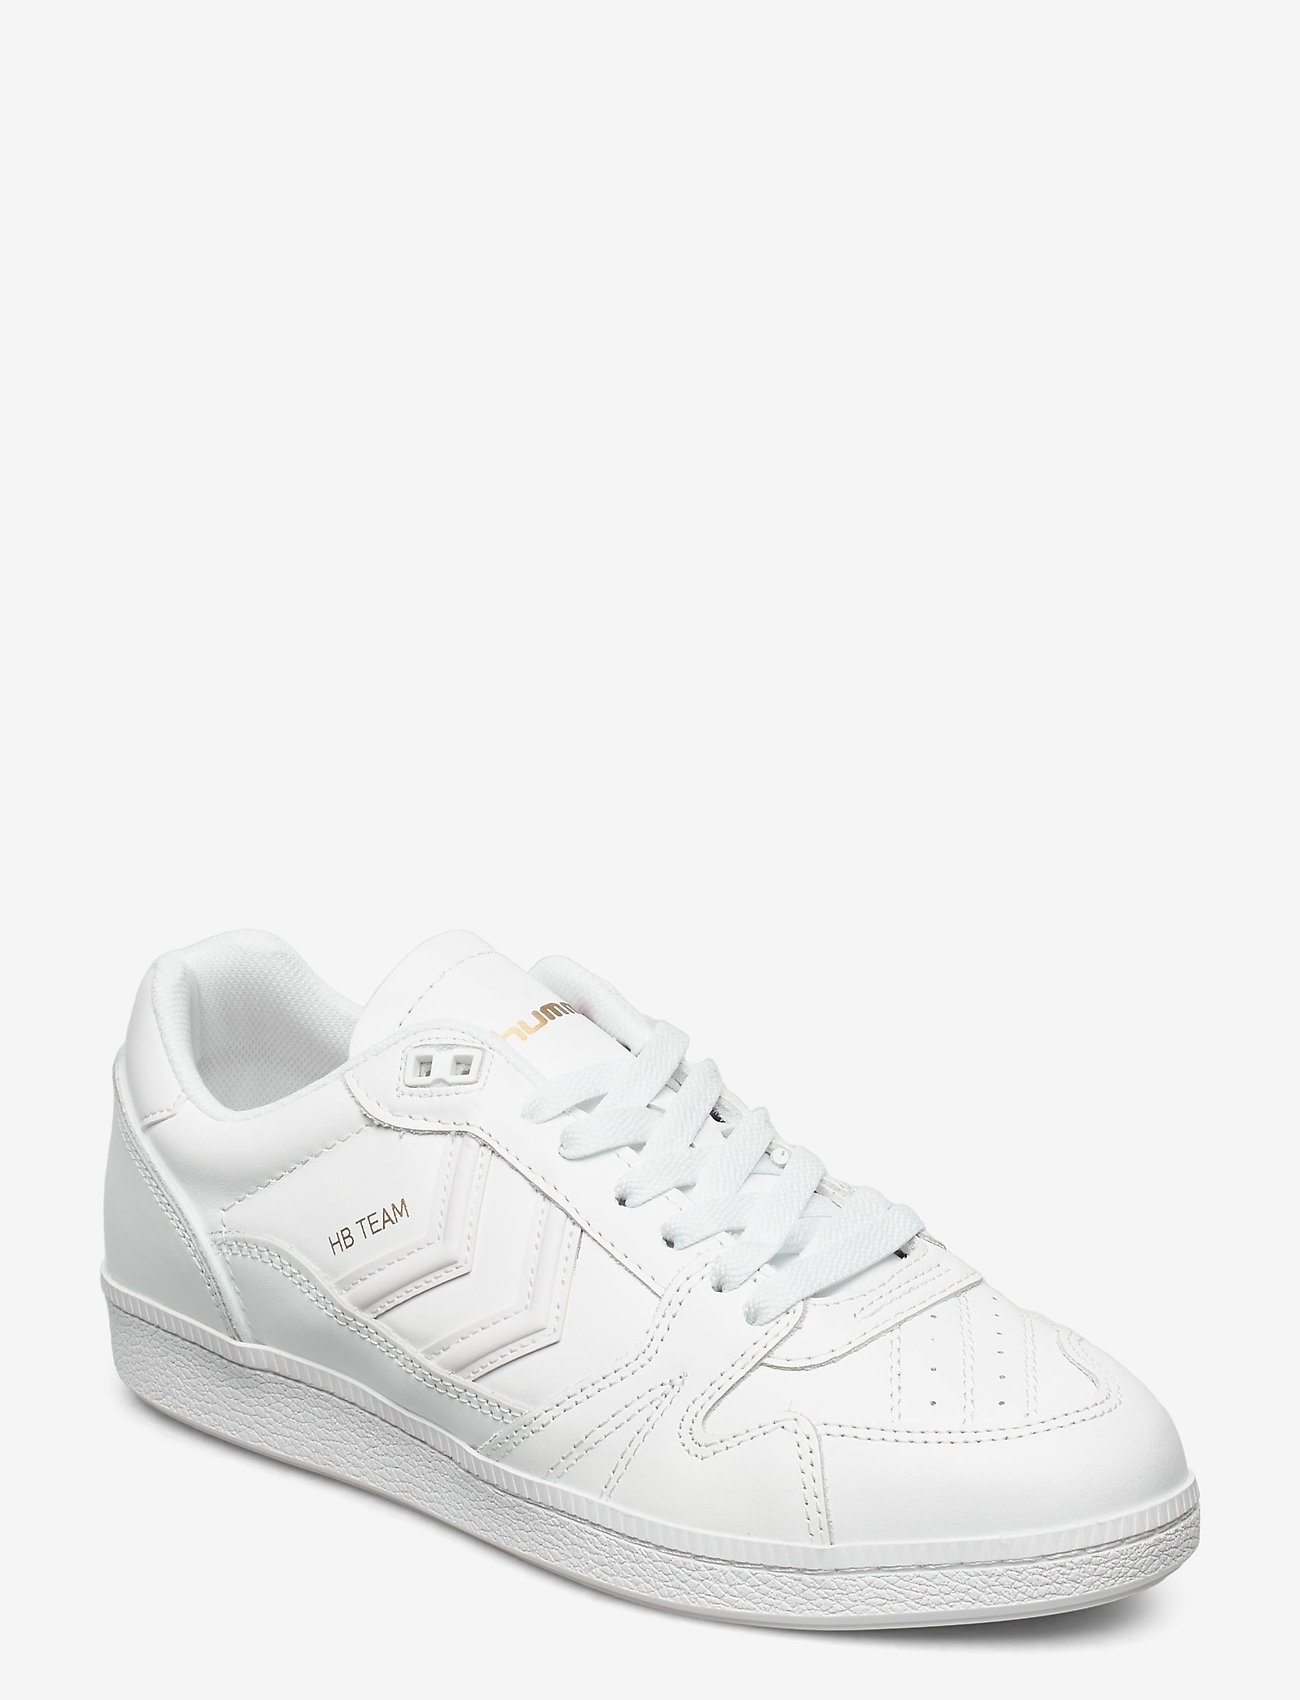 Hummel - HB TEAM LEATHER - laag sneakers - white - 0